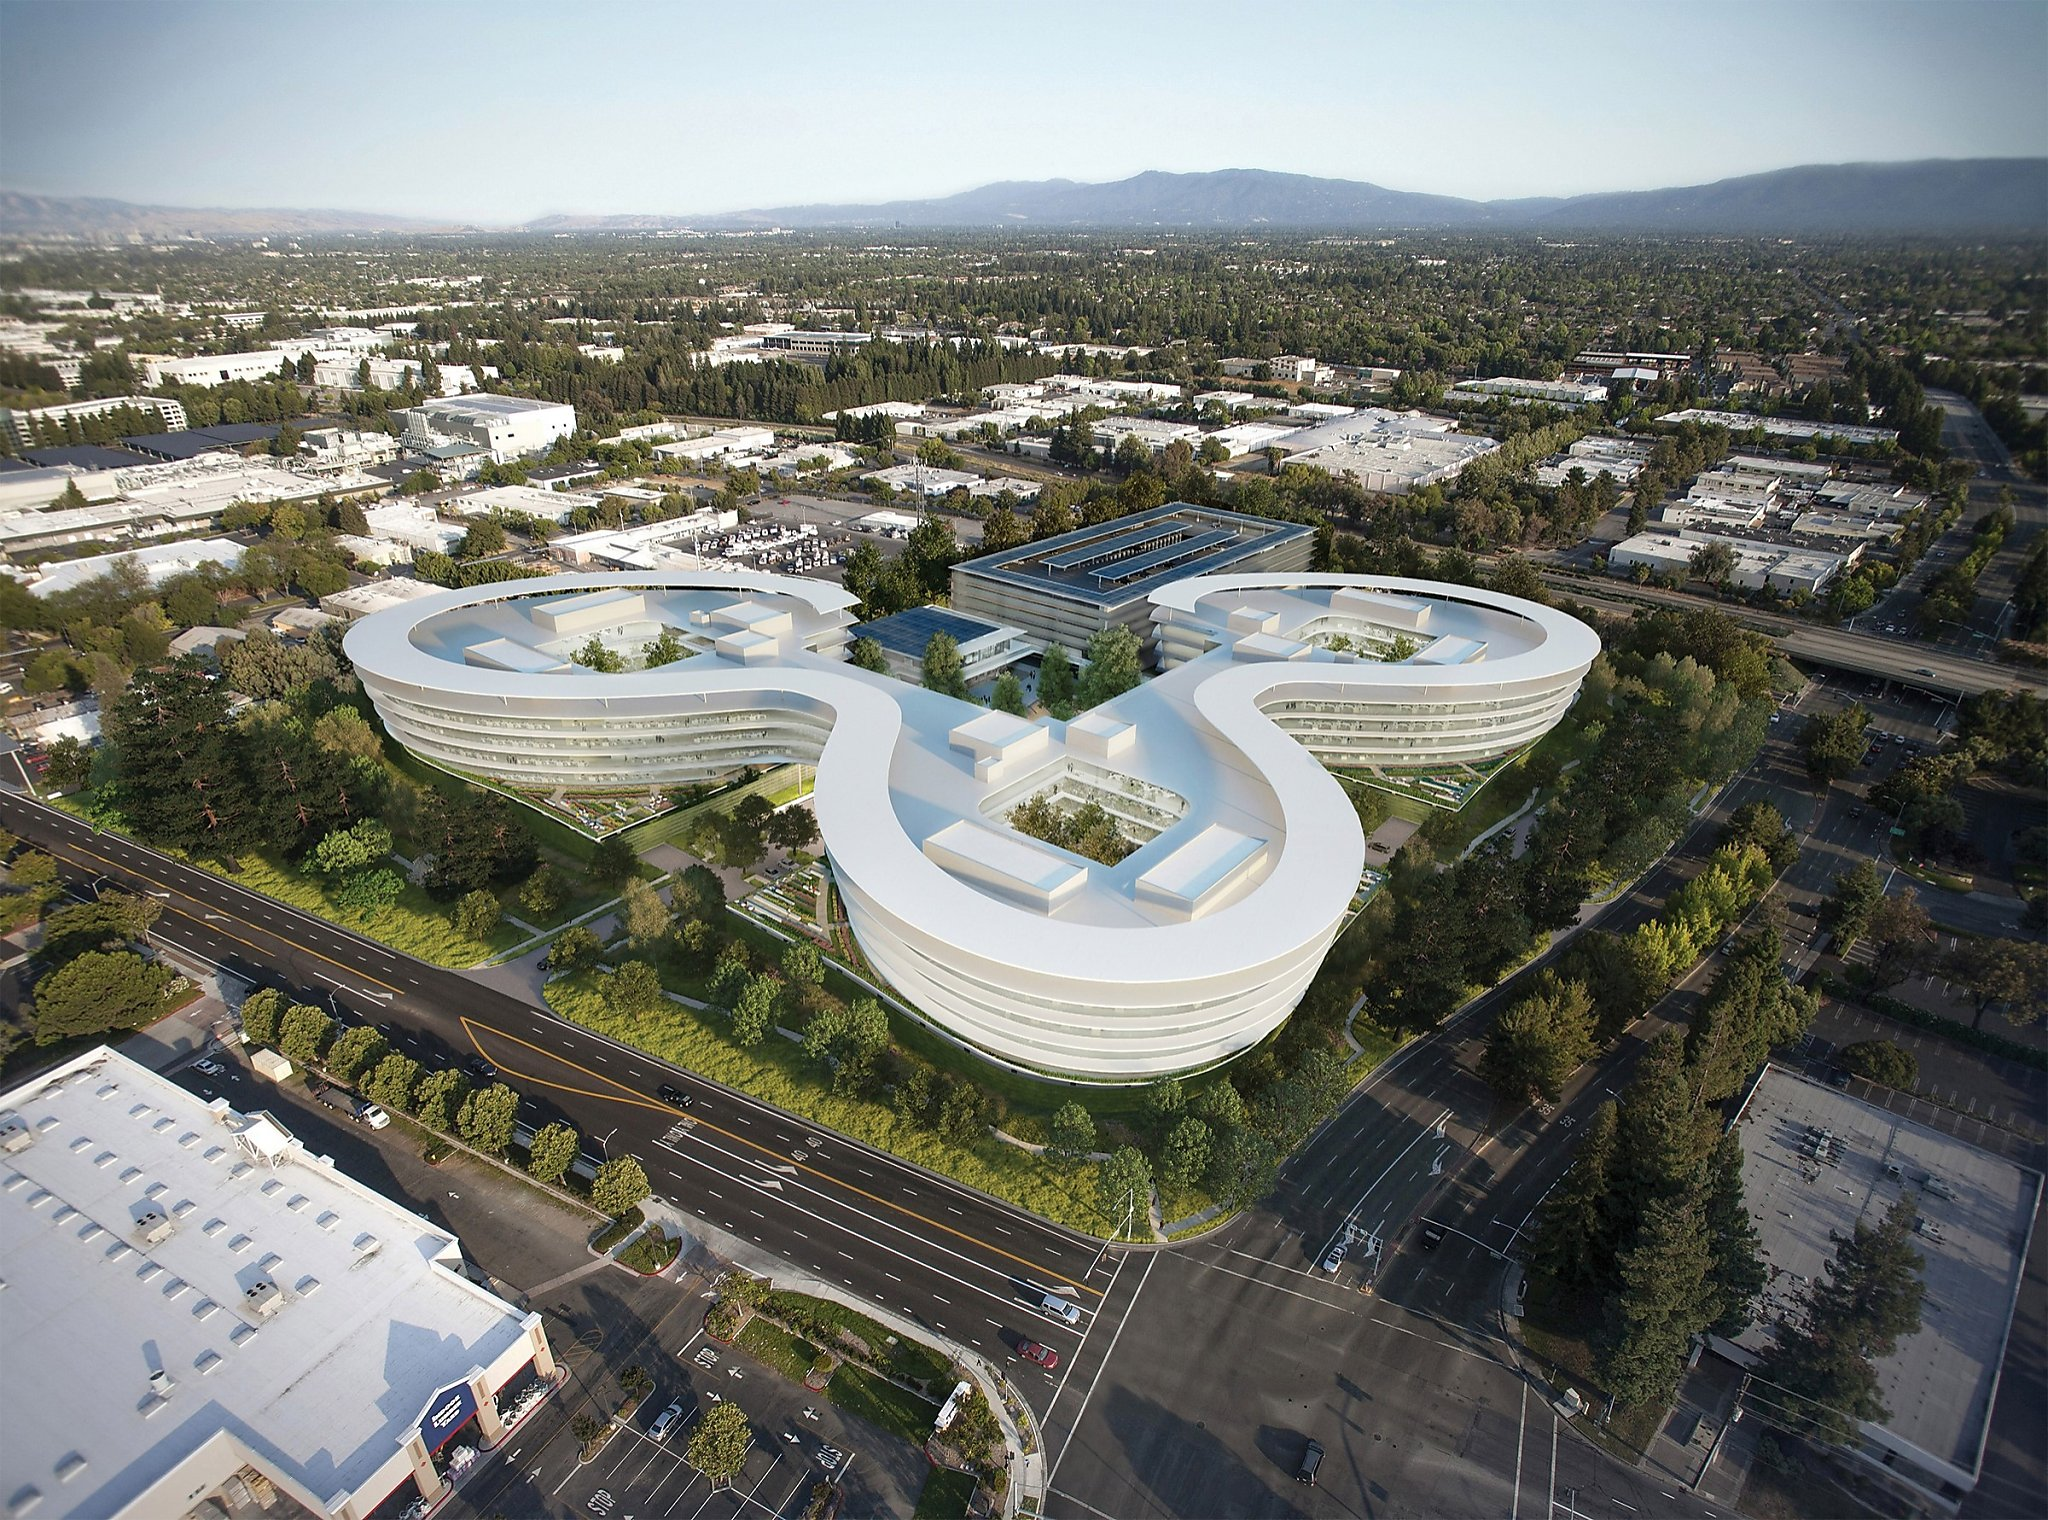 new apple office cupertino. Cupertino Apple Office. Expands In Sunnyvale, Potentially Adding Futuristic Space - Sfgate New Office E